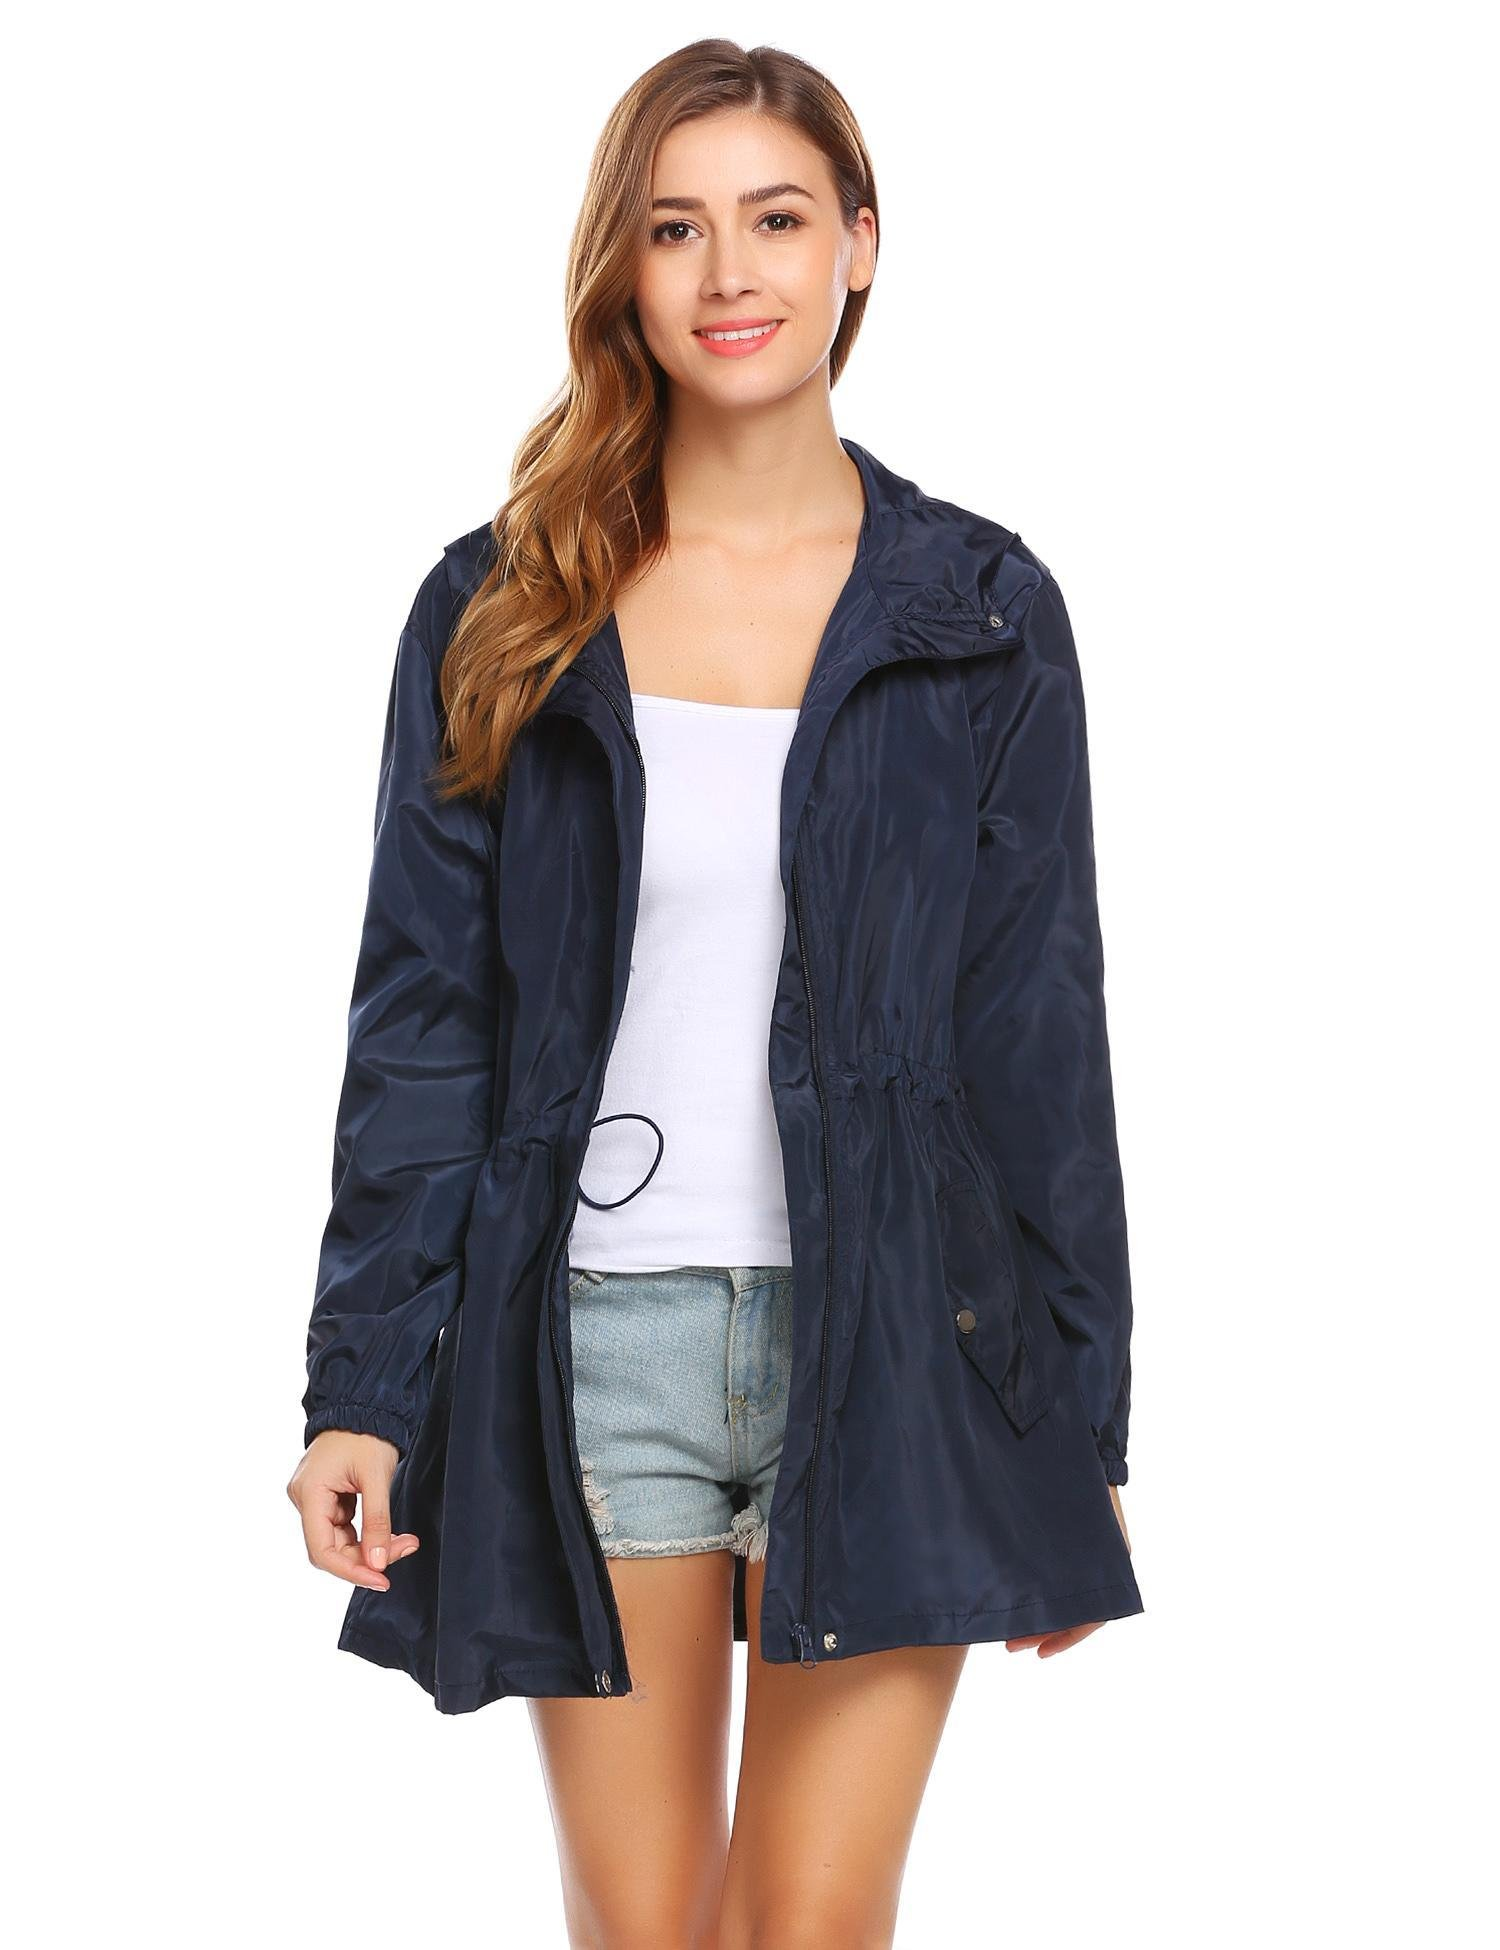 Opino Ladies Casual Basic Solid Autumn Jacket With Side Pockets Tops Navy Blue XXL